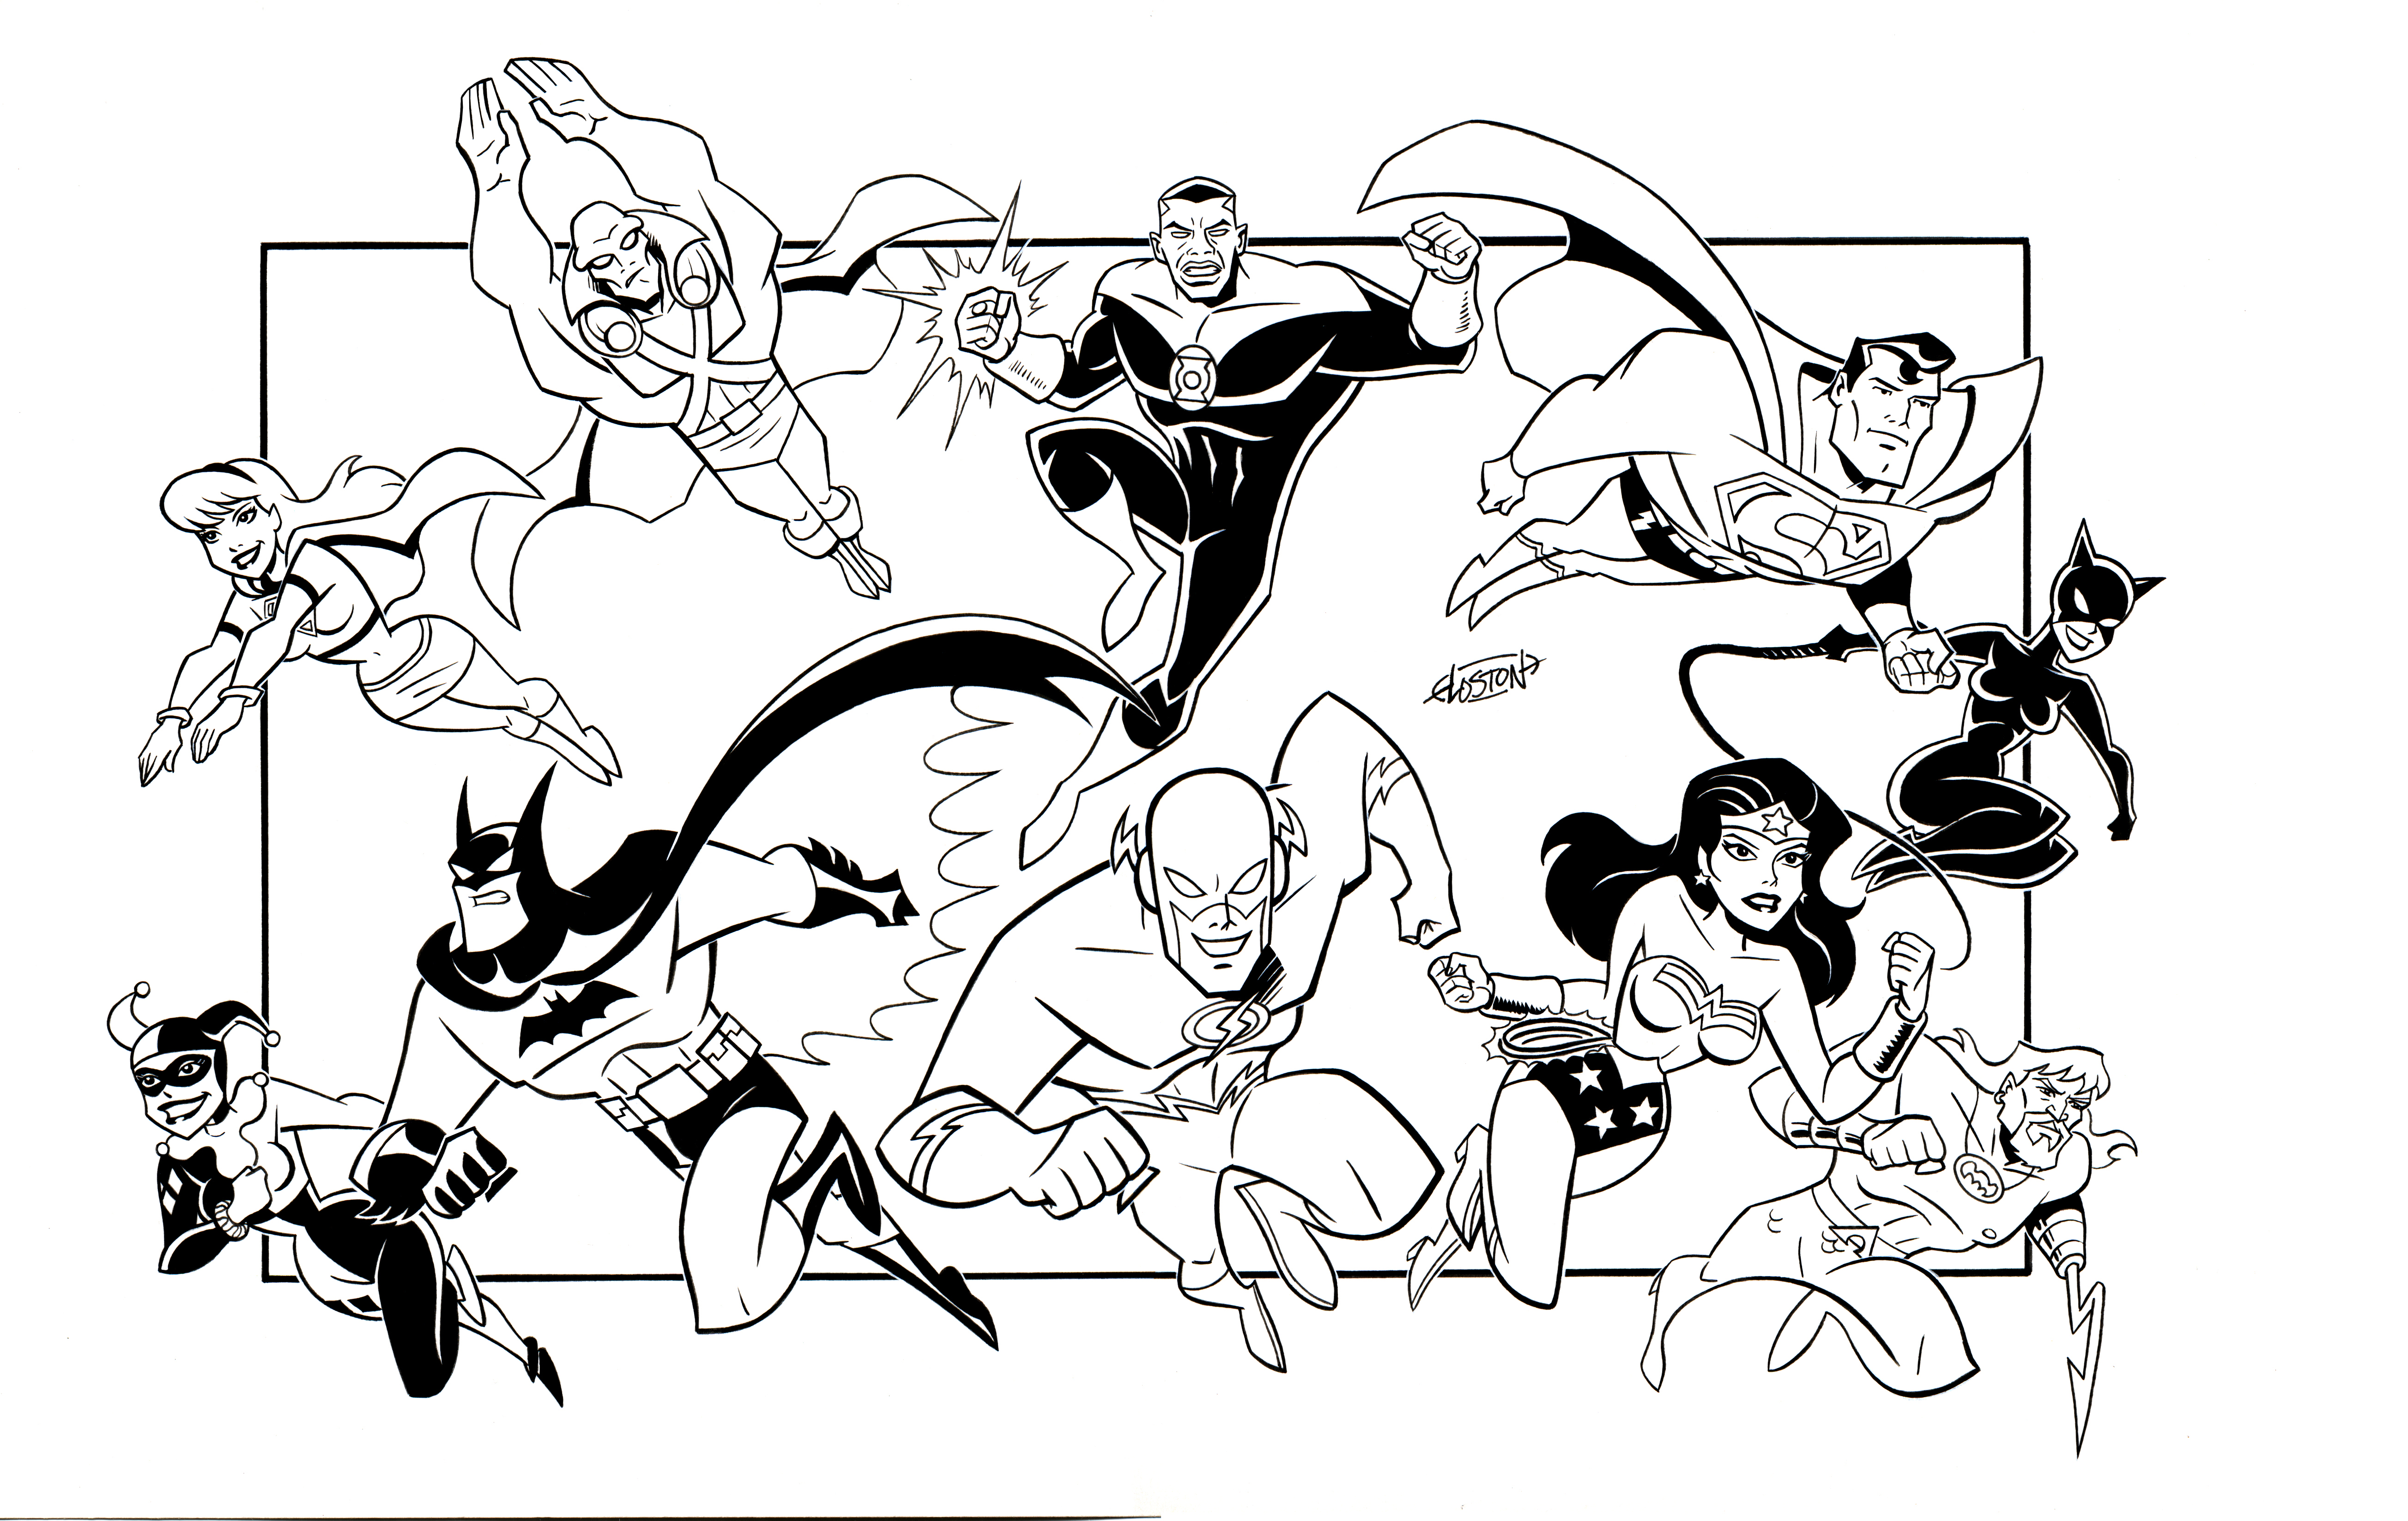 justice league doom coloring pages - photo#12